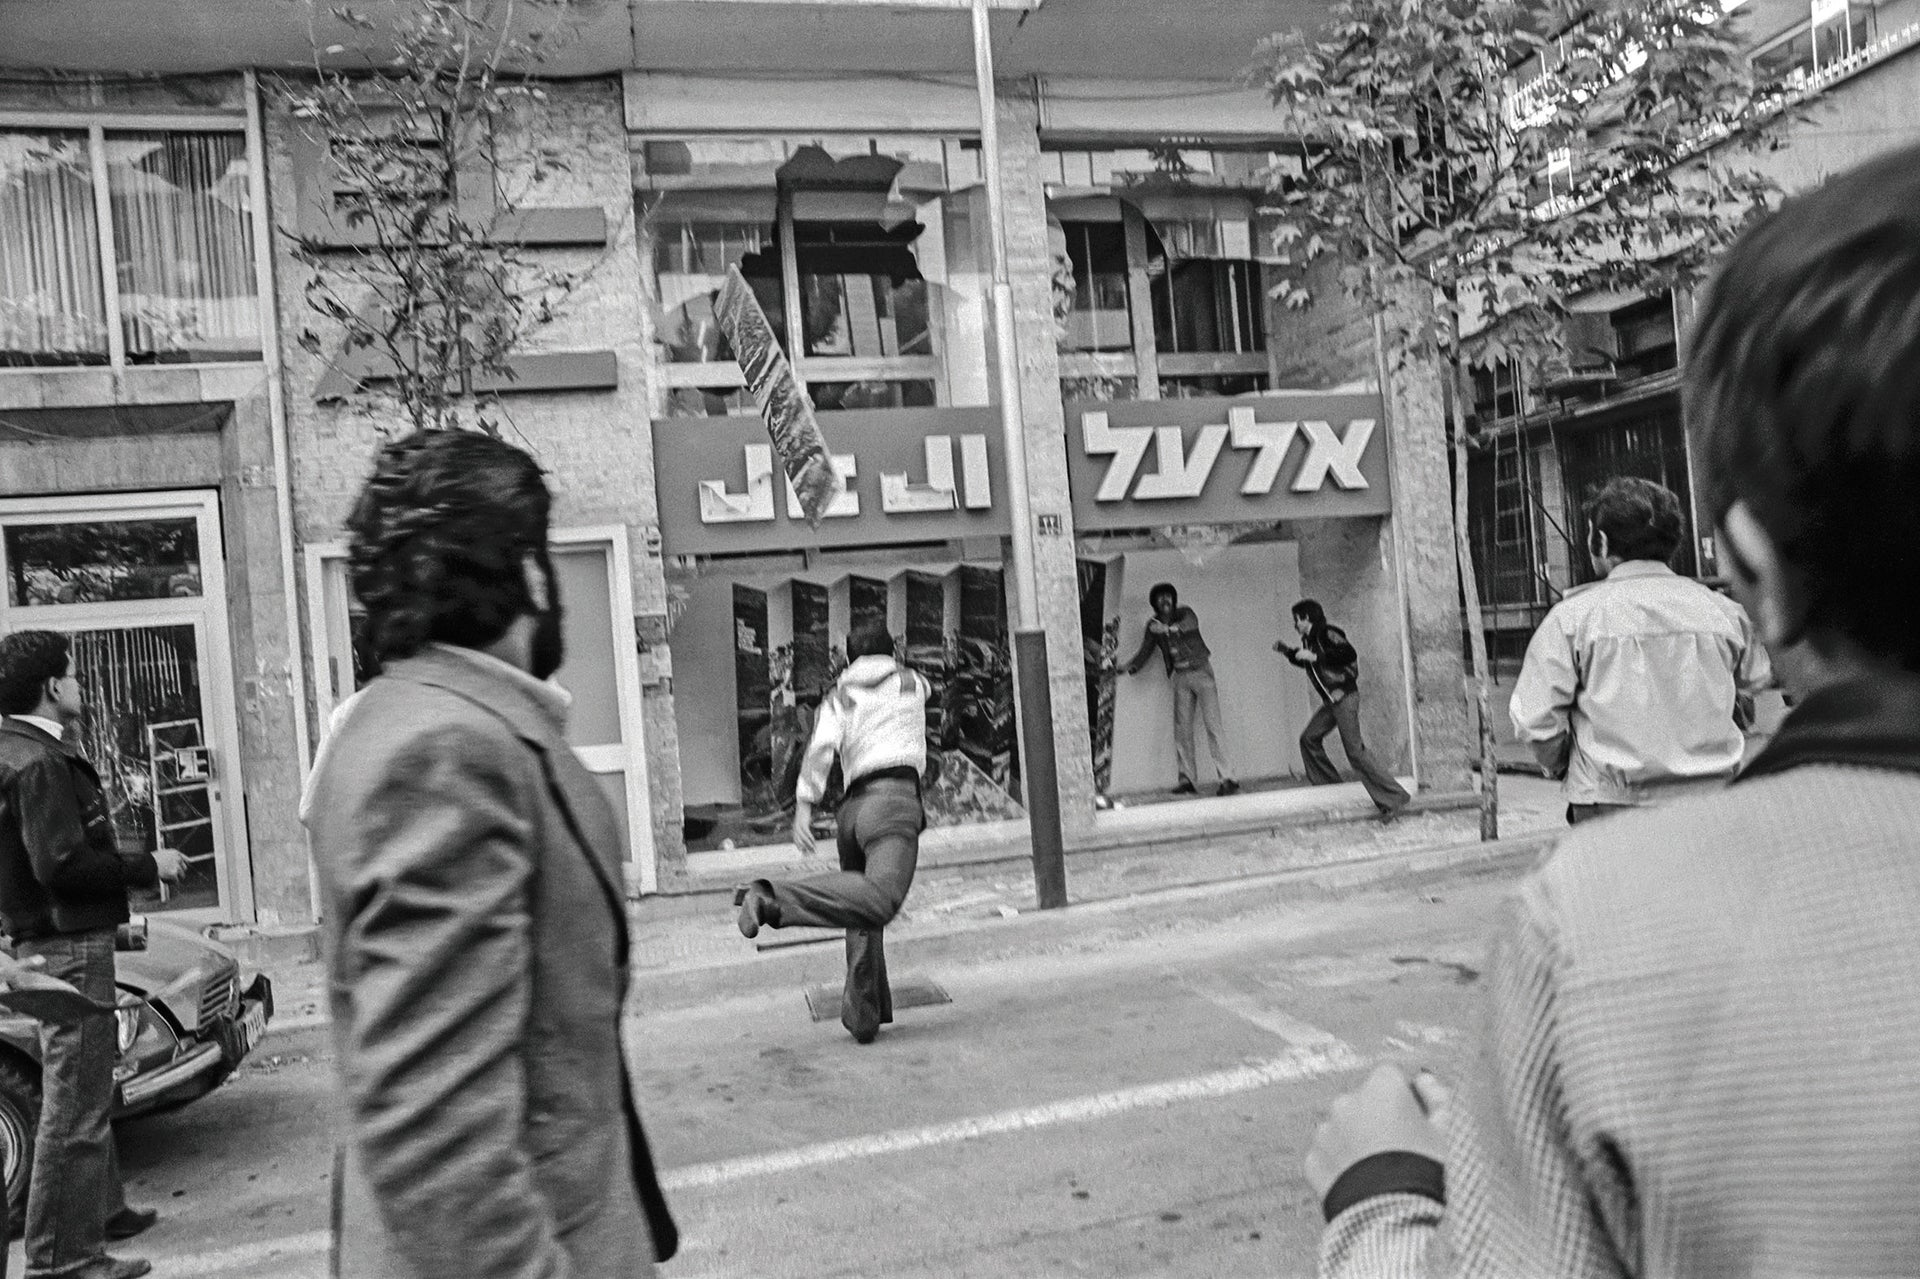 Protesters attacking the El Al office in Tehran in 1978. Prior to the revolution, the airline flew the Tel Aviv-Tehran route 18 times weekly.